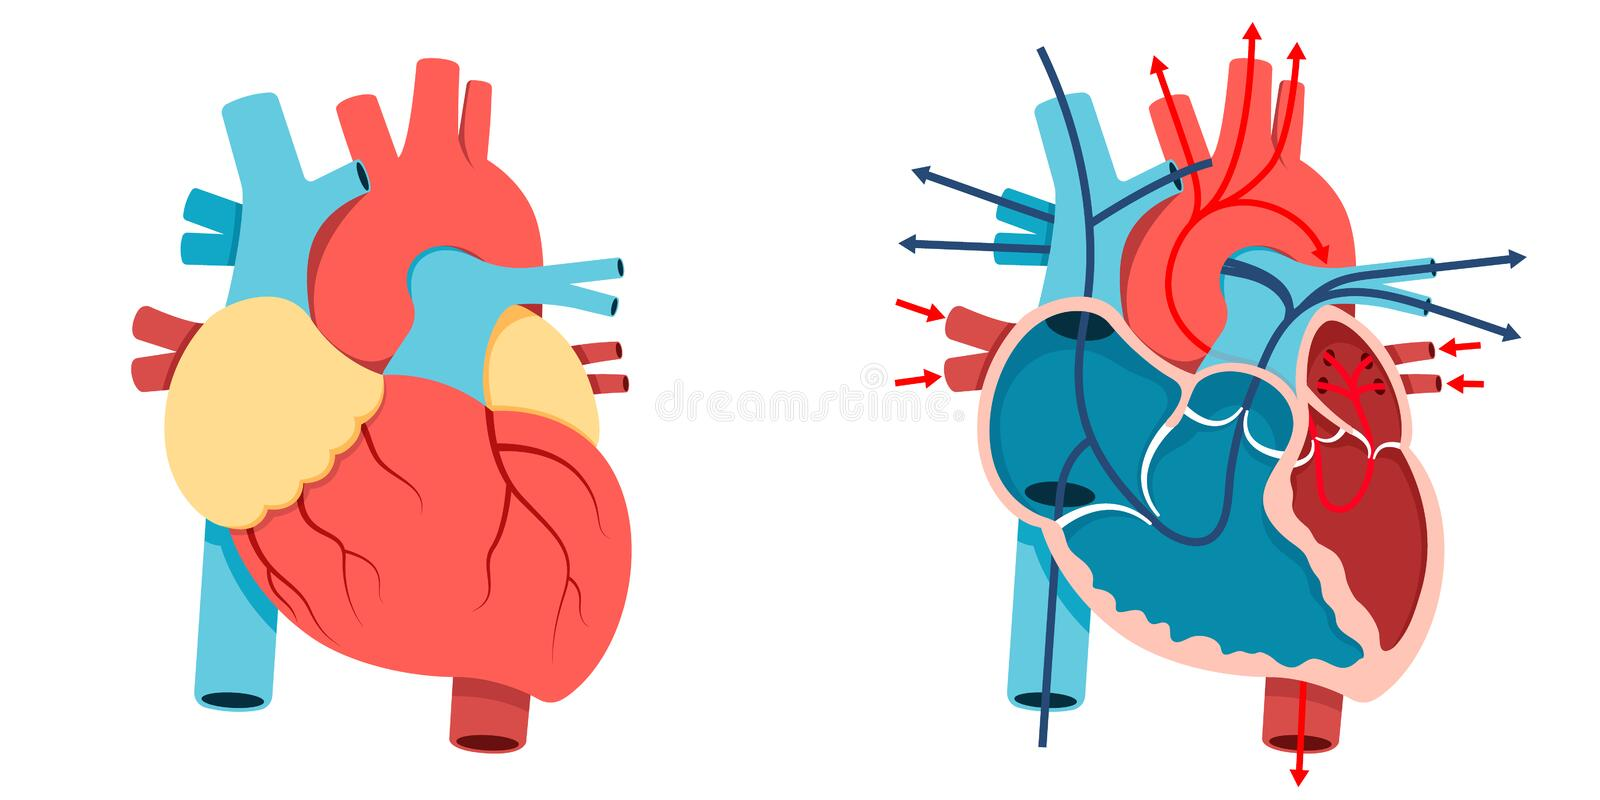 Human heart and Blood flow vector illustration